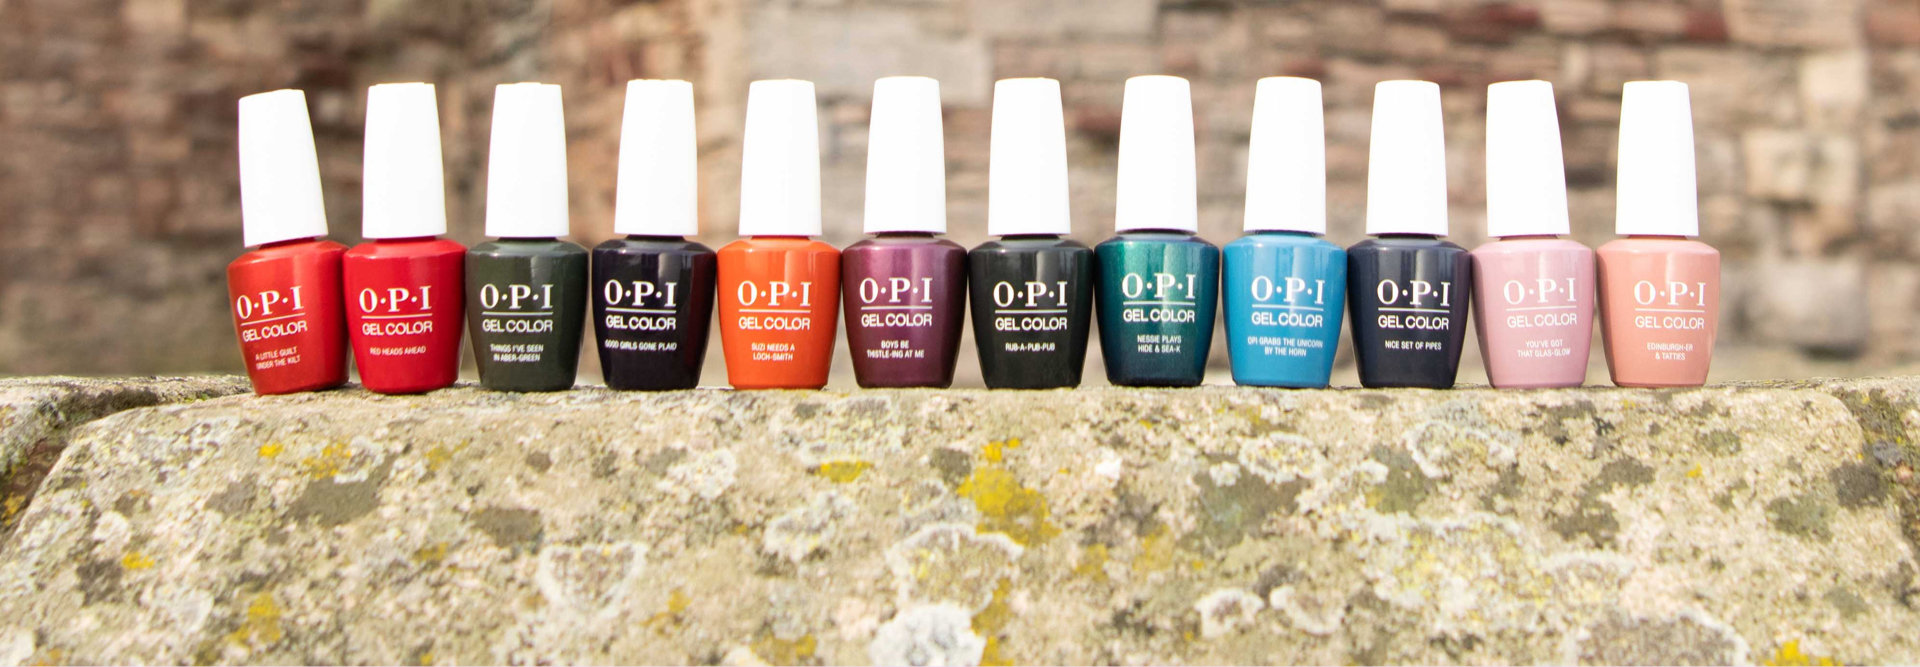 OPI Nail Polish, Nail Care & Nail Art | OPI®